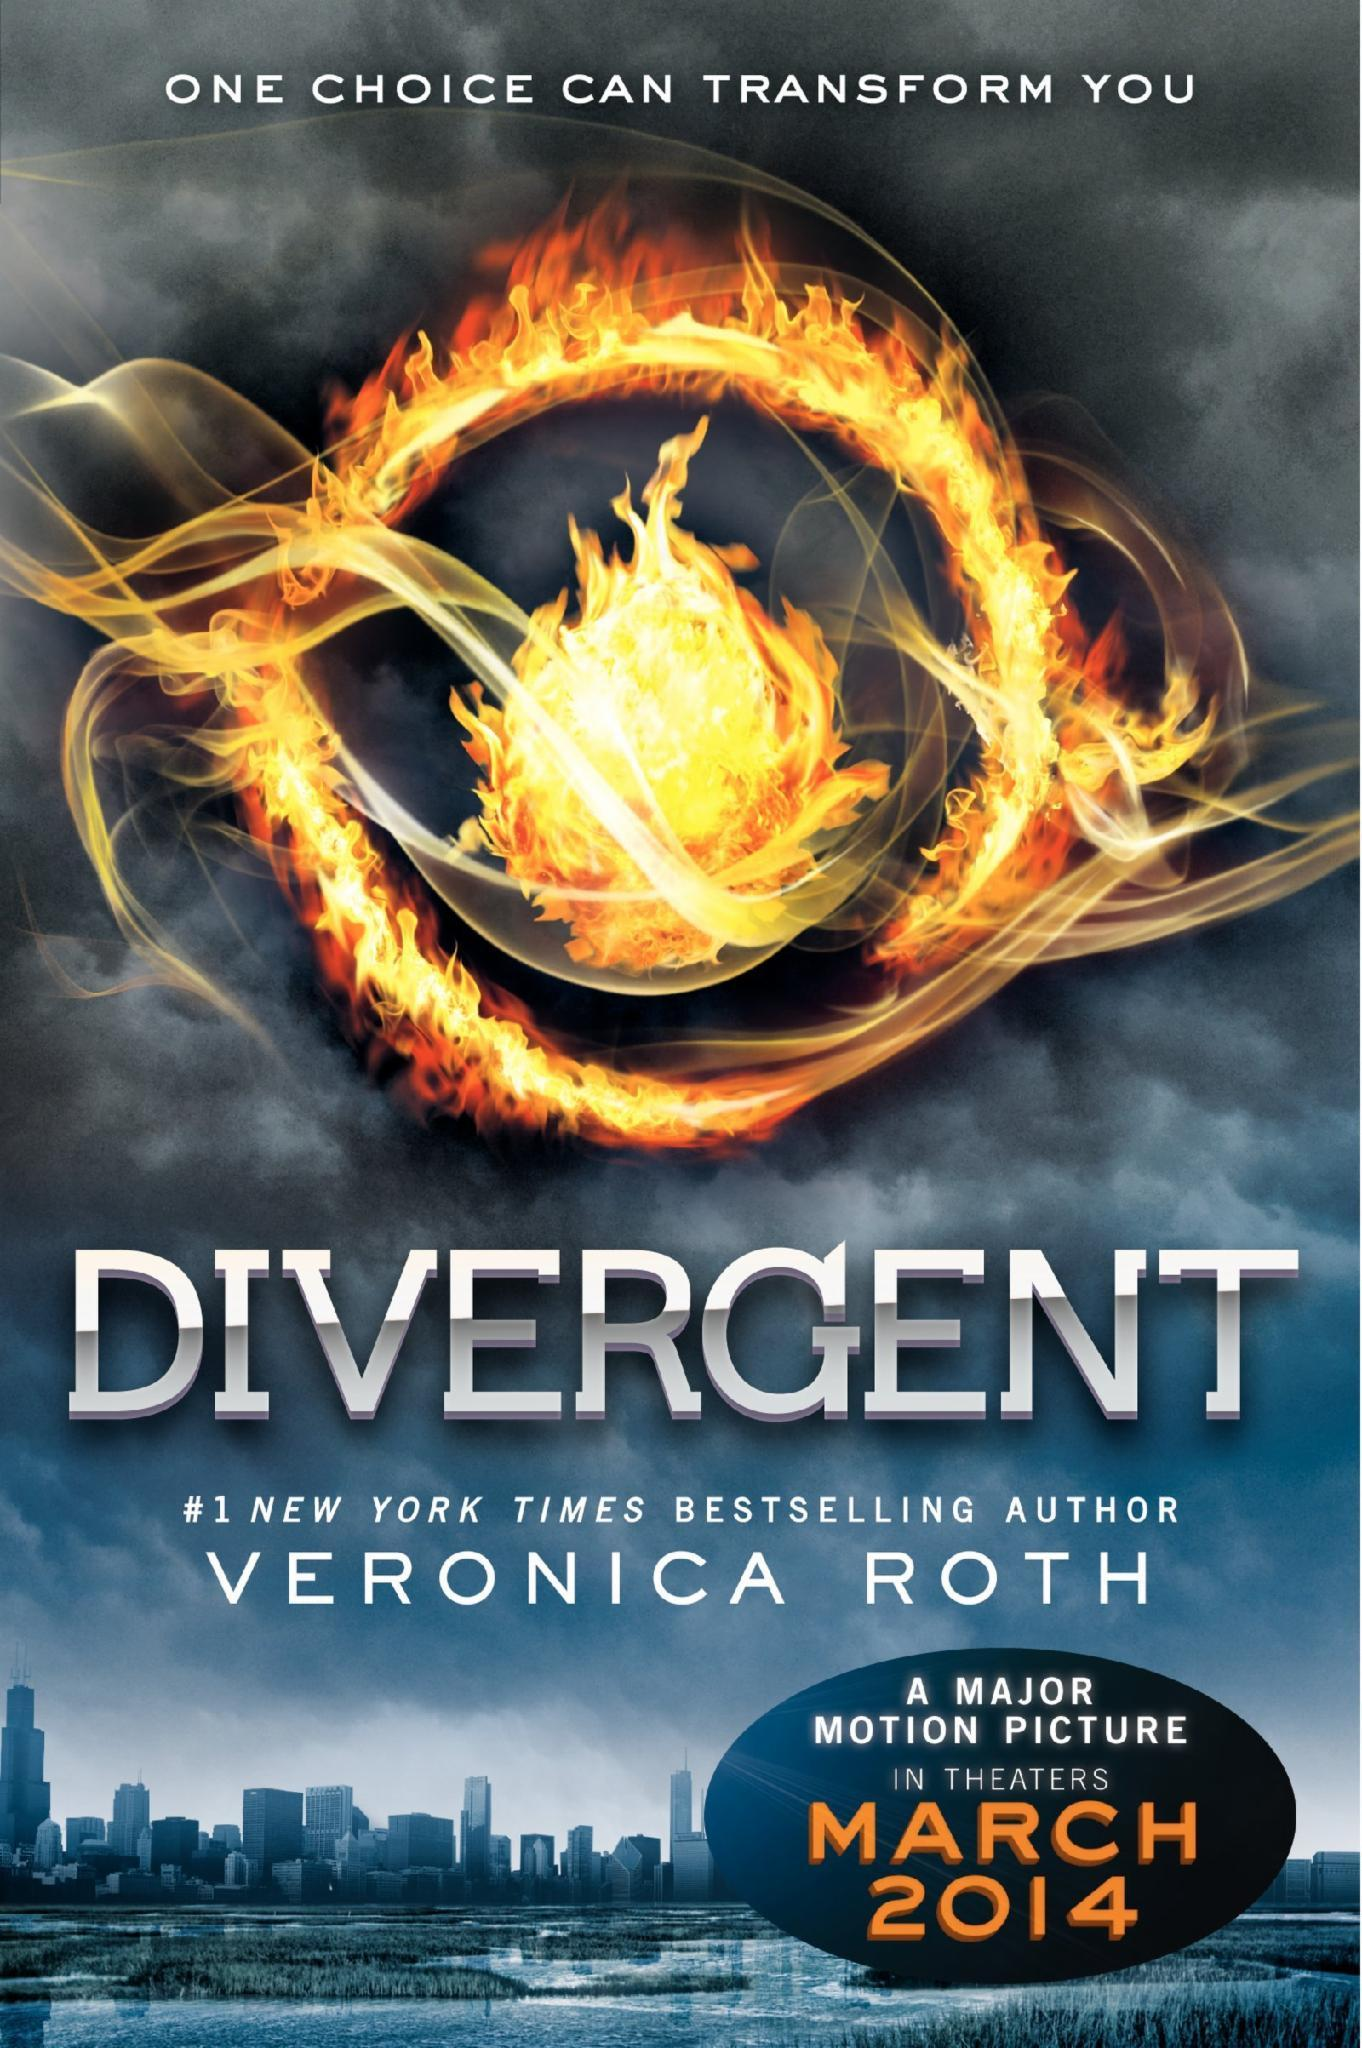 How Well Do You Know Divergent(Book & Movie)?